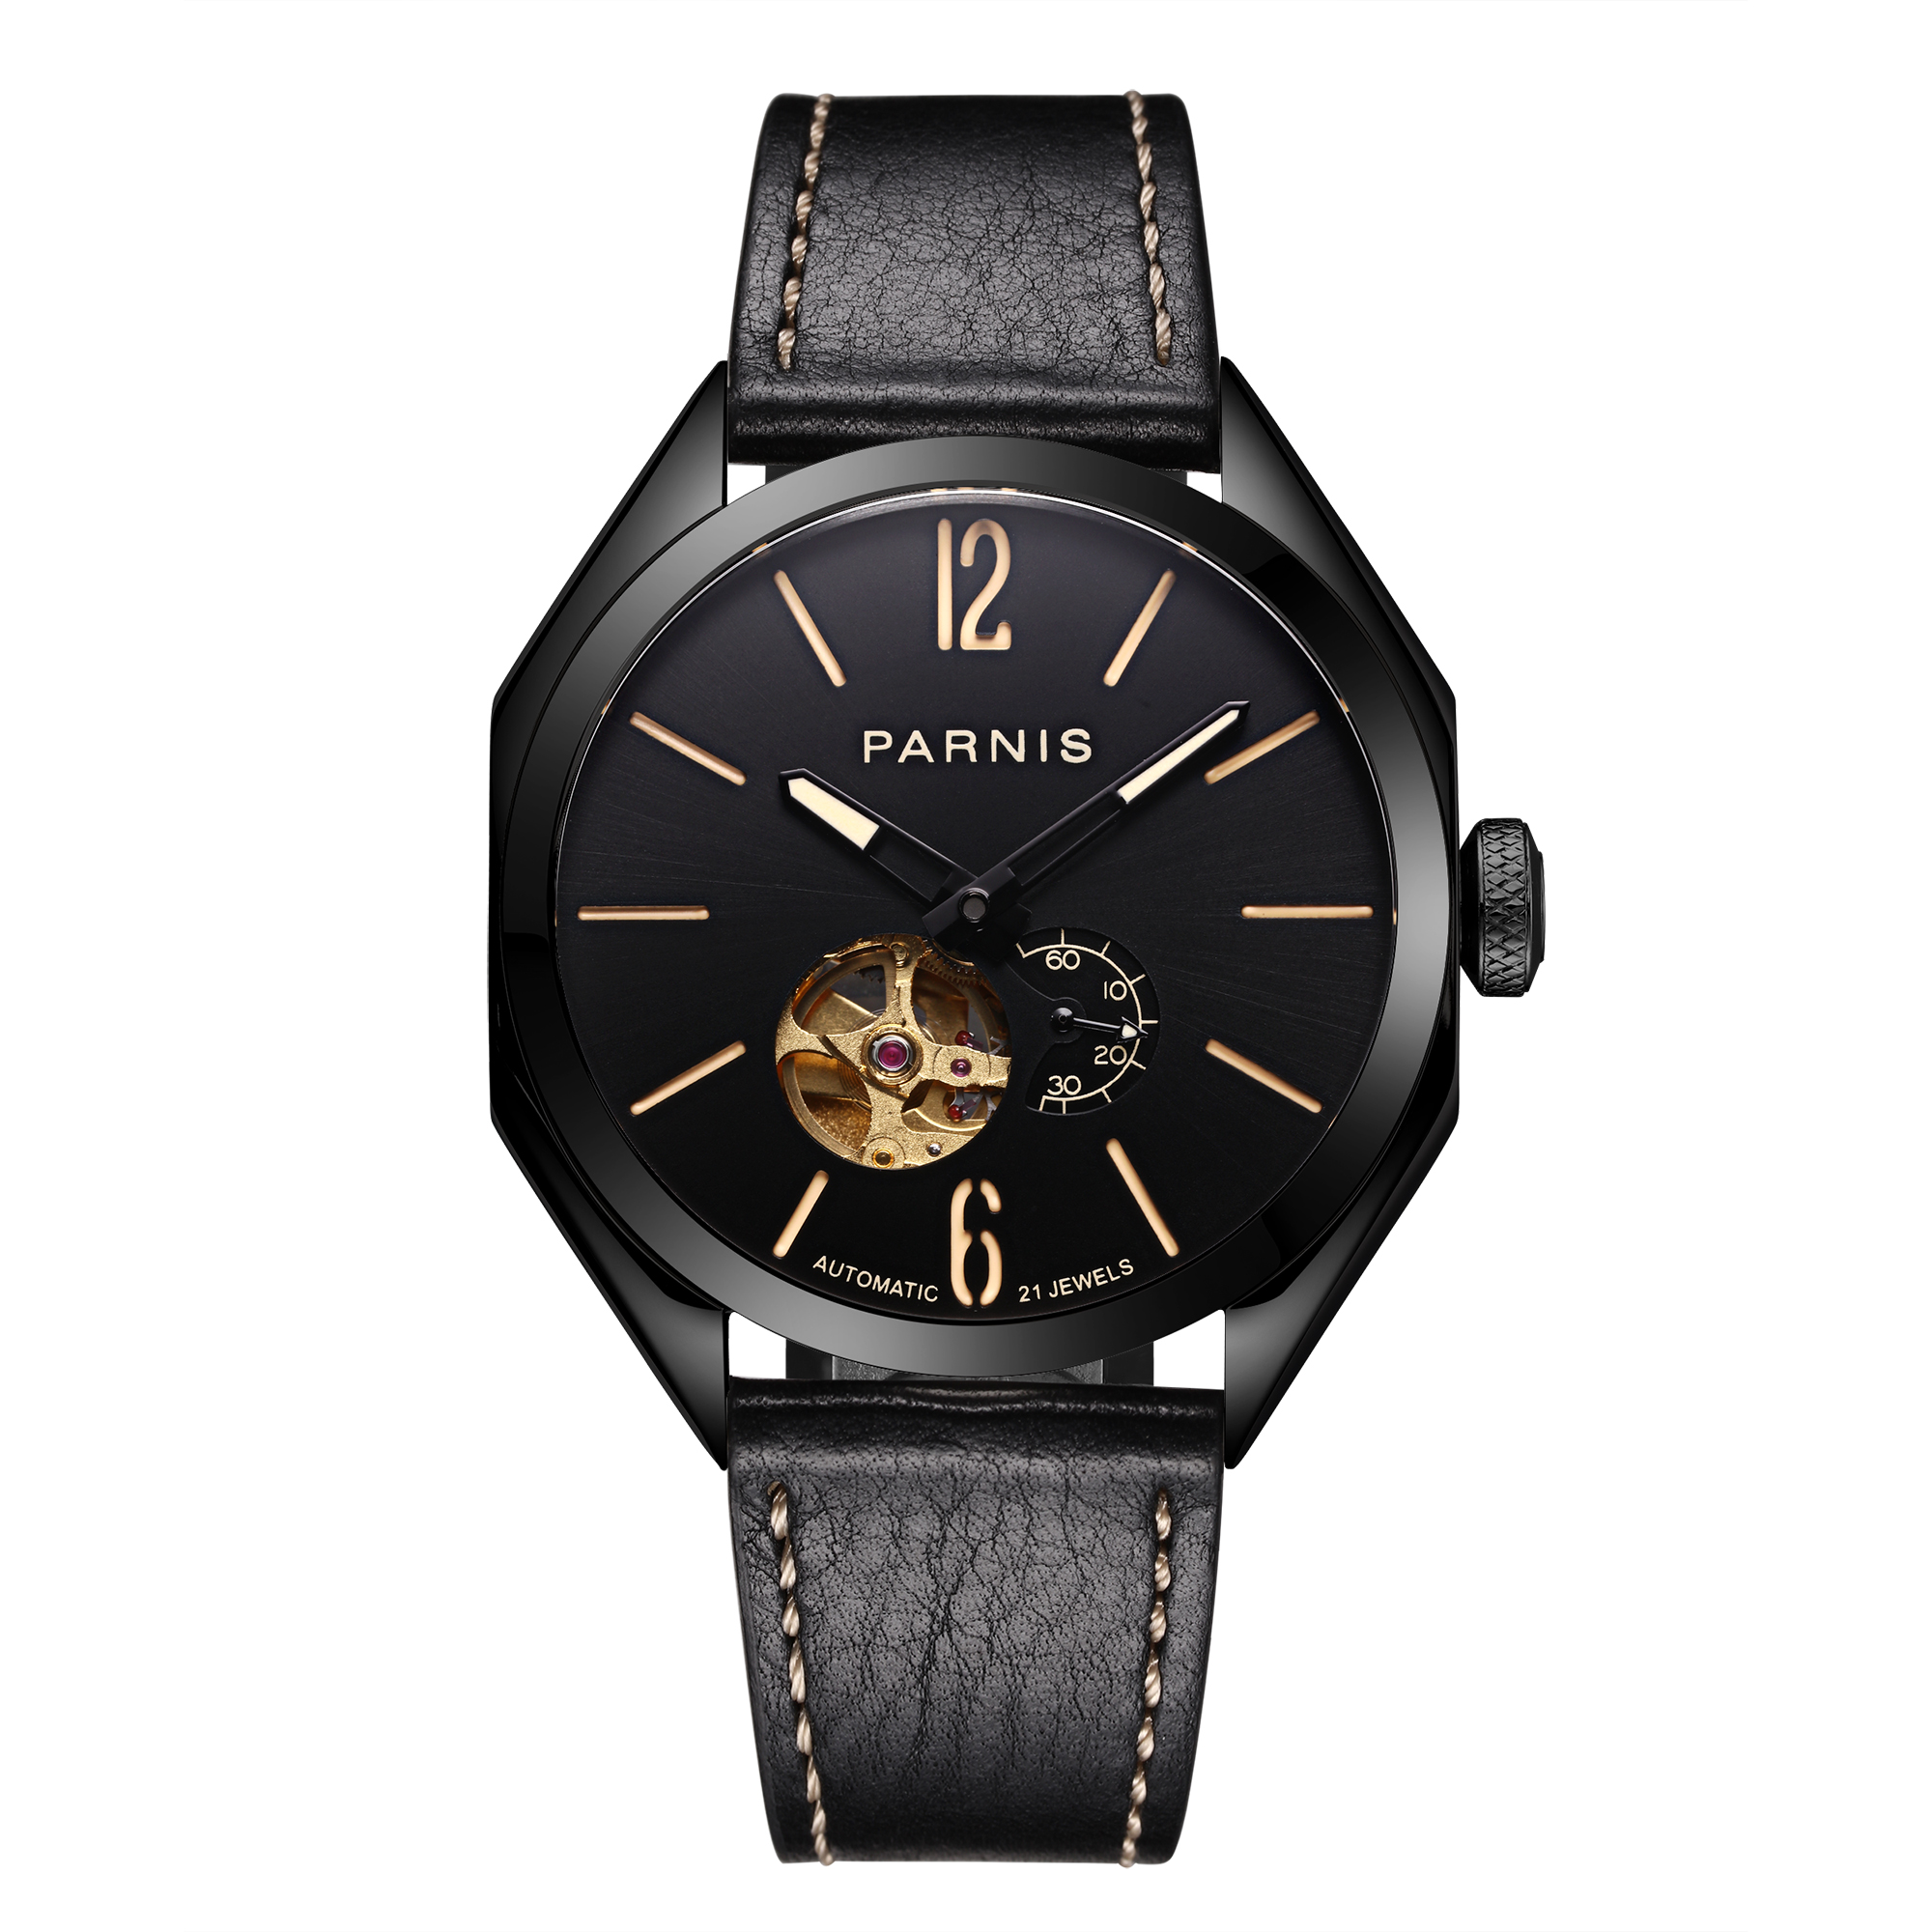 PARNIS 43mm Black Dial Miyota Automatic Mechanical Men Watches Sapphire Glass Luminous Black Case men's Watch Luxury Brand 2019